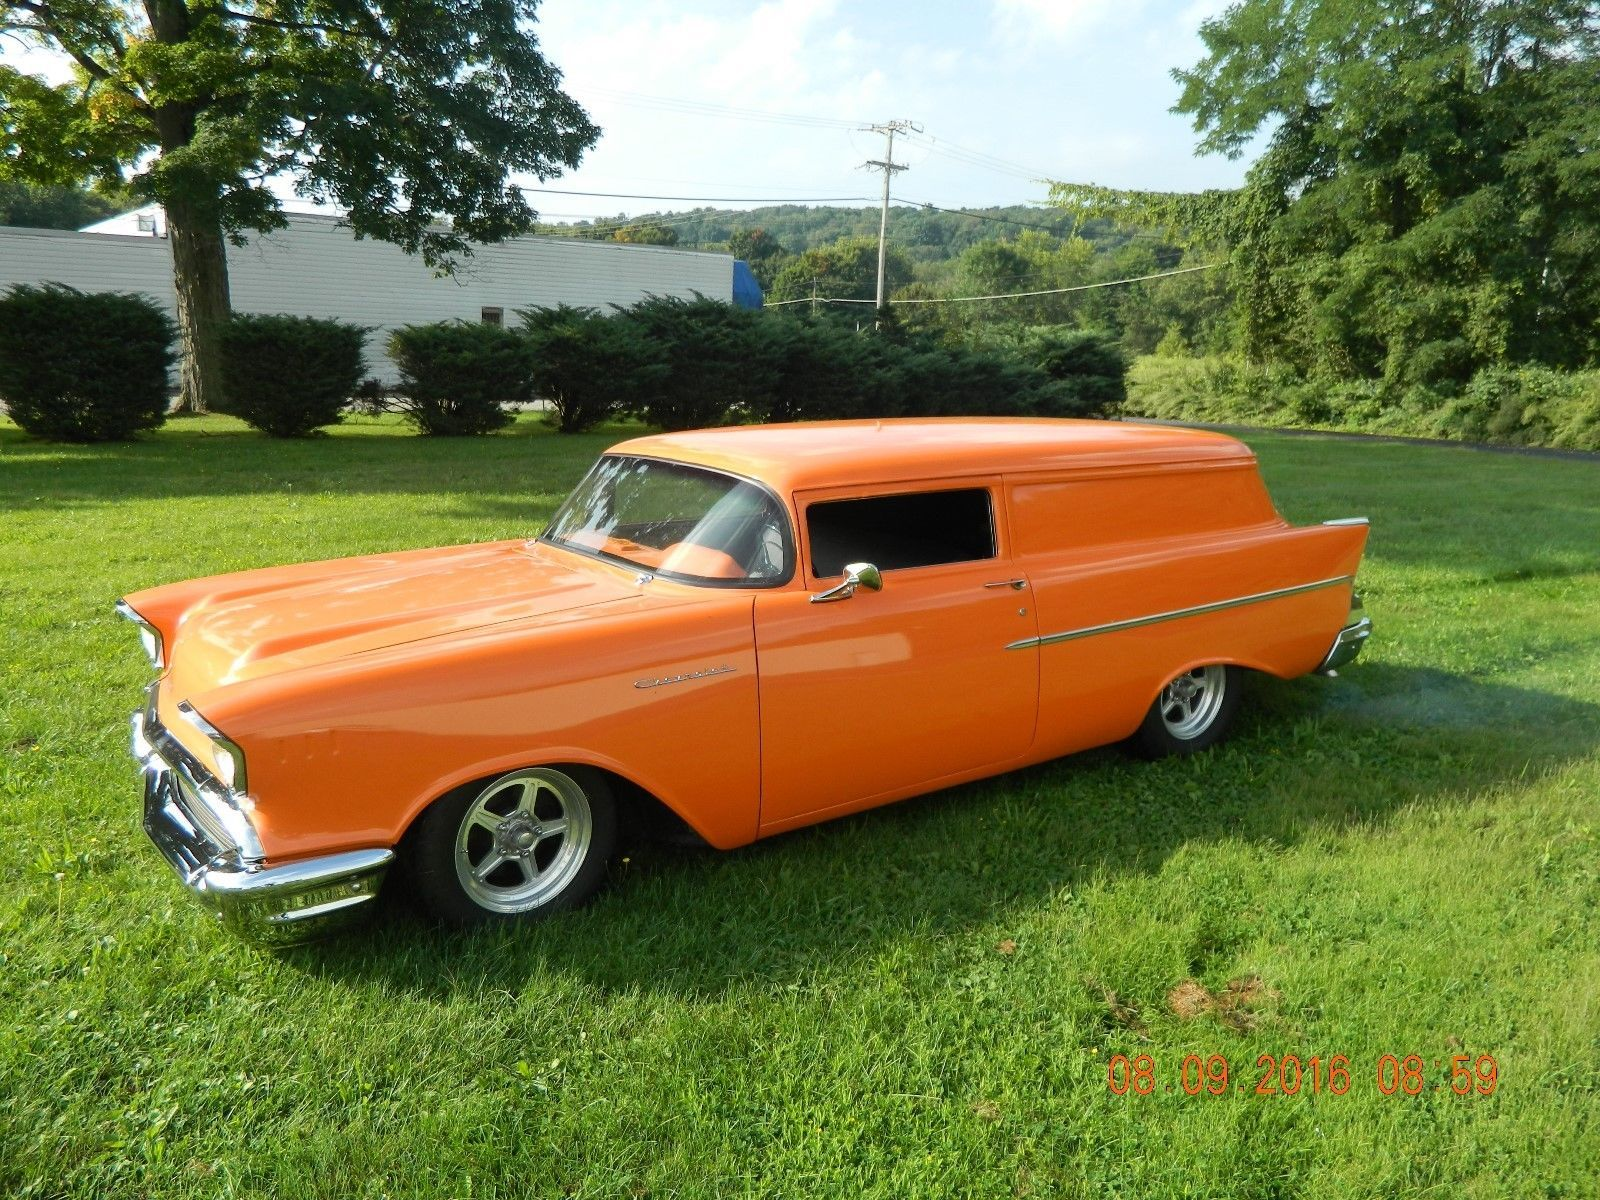 57 Chevy Chopped Sedan Delivery Chevrolet Sedan Custom Cars For